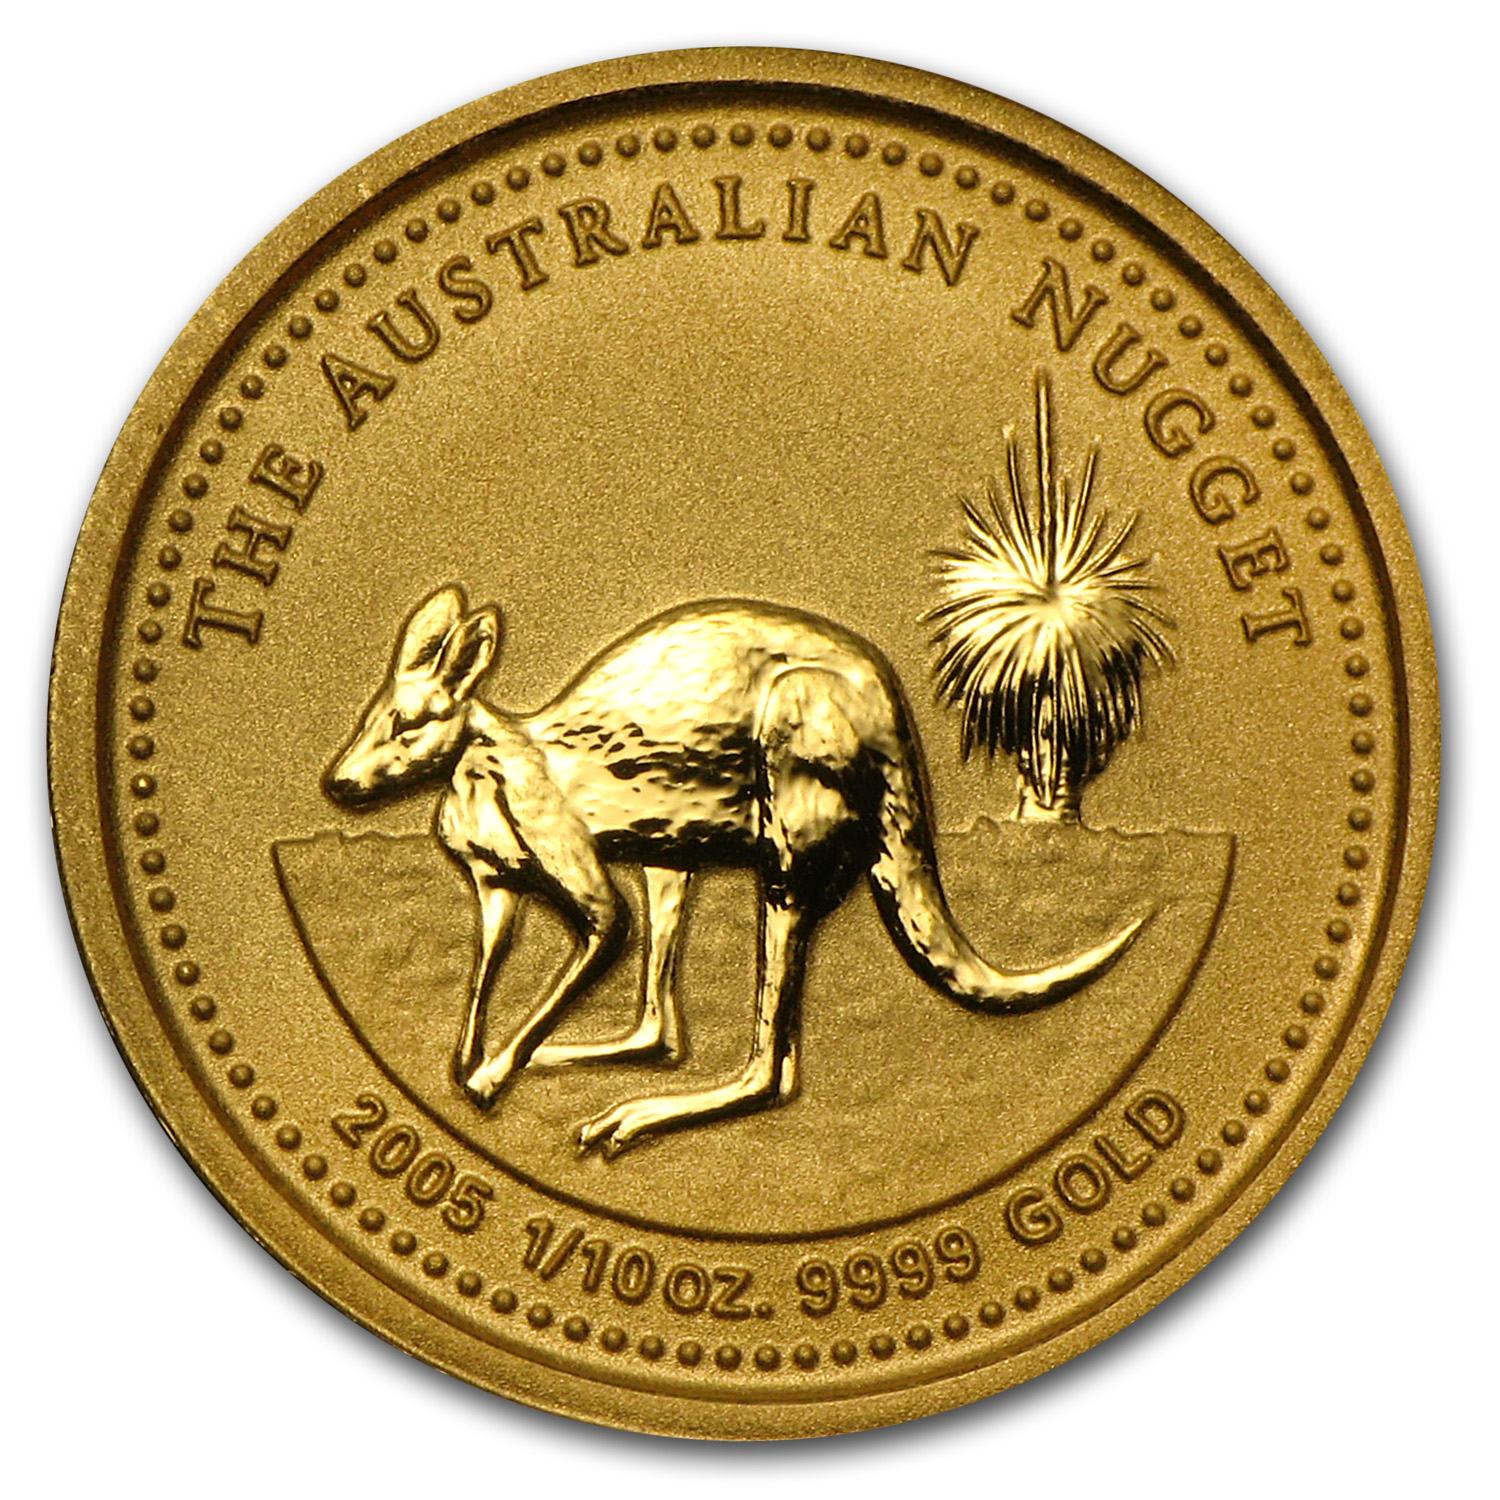 2005 Australia 1/10 oz Gold Nugget